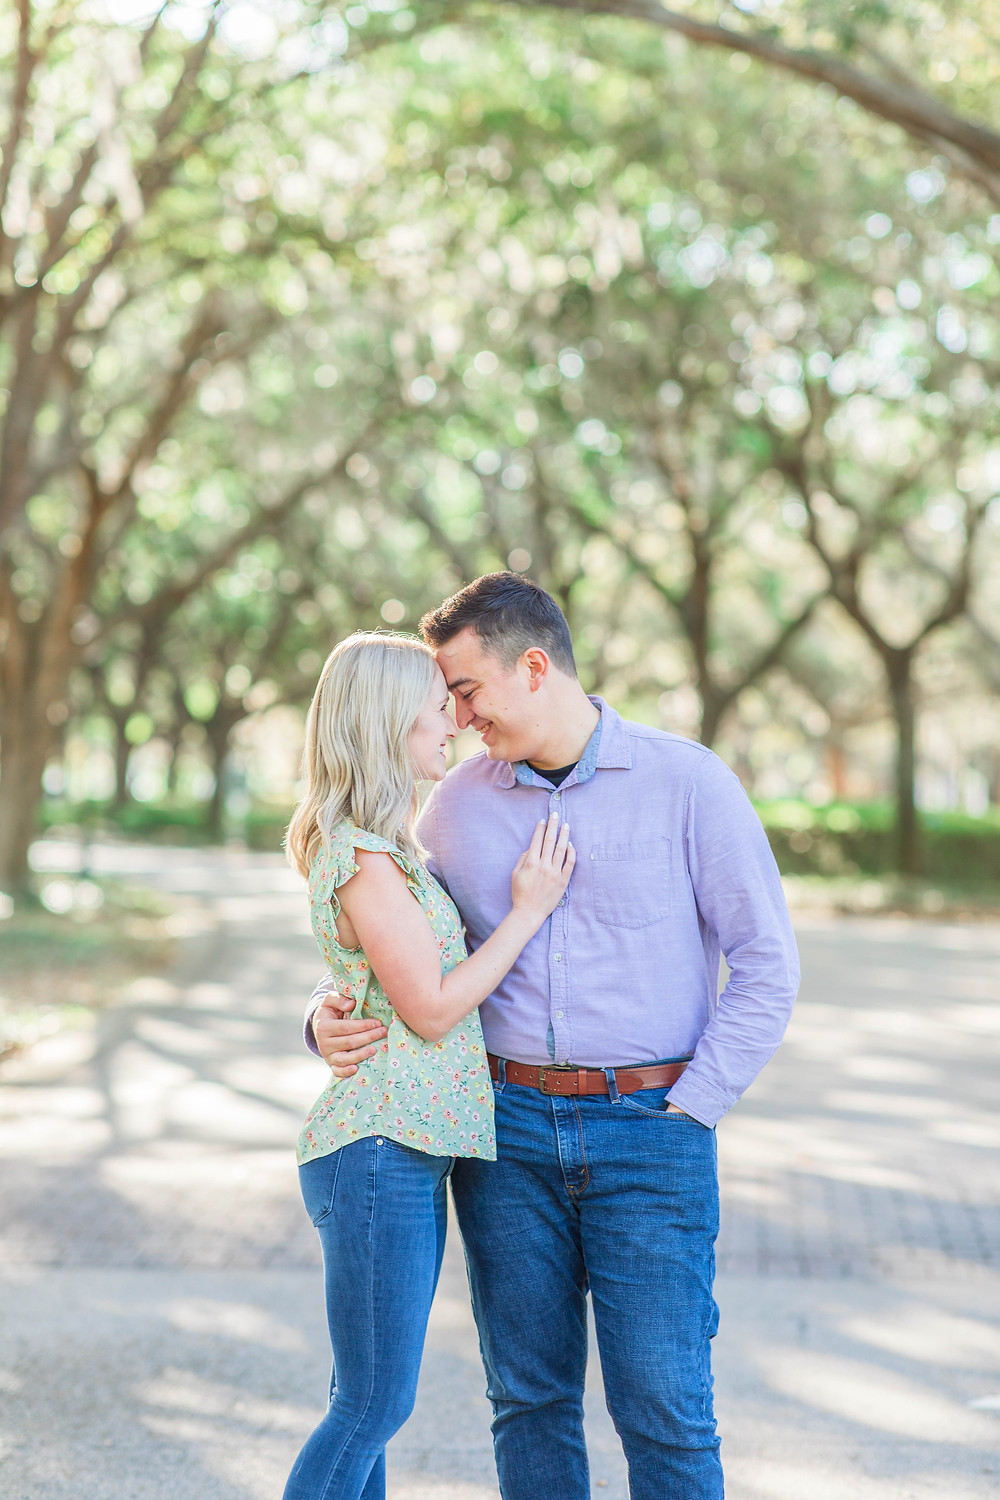 Cypress Grove Park Engagement Orlando Florida by Katie Trauffer Photography